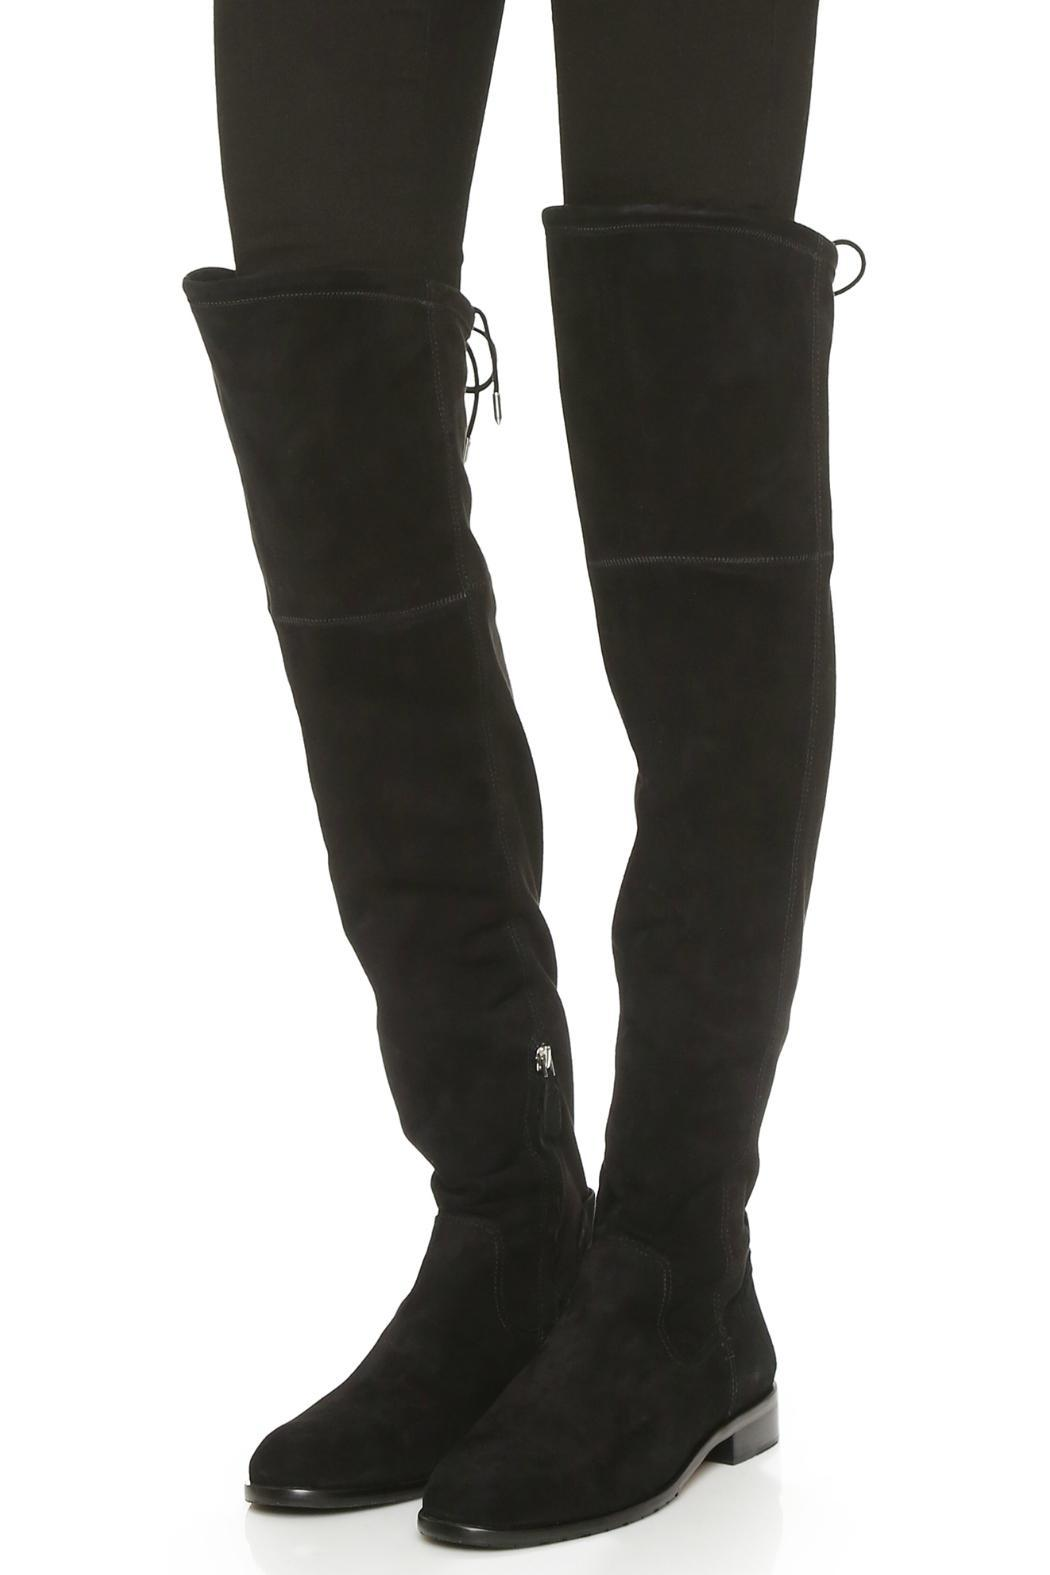 Dolce Vita Over The Knee Boots from